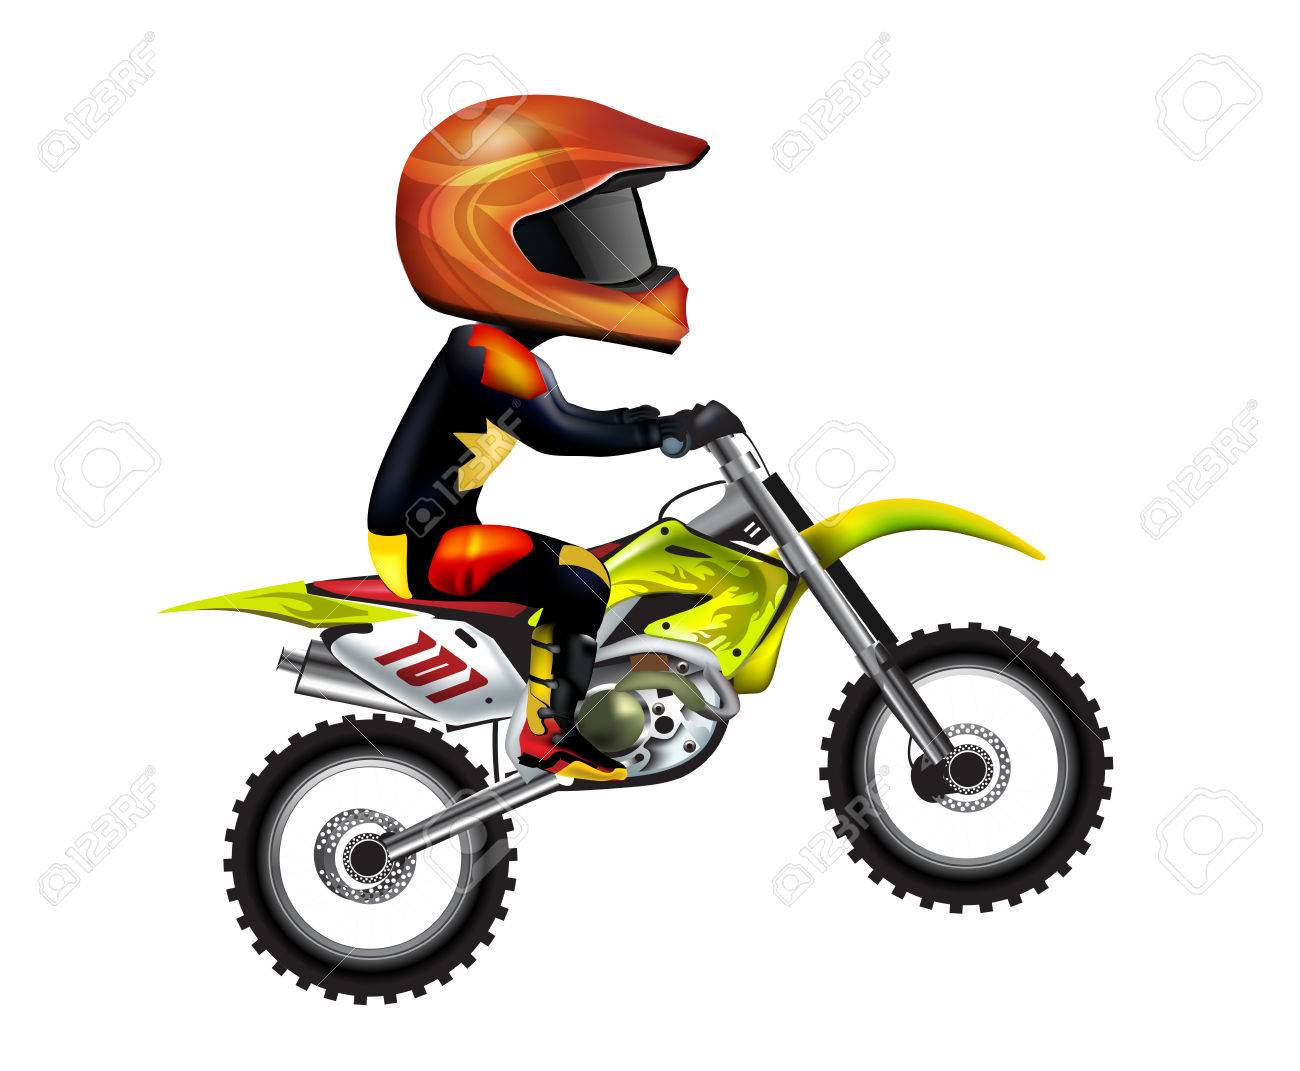 1300x1071 Motorcycle Rider Clipart Amp Motorcycle Rider Clip Art Images